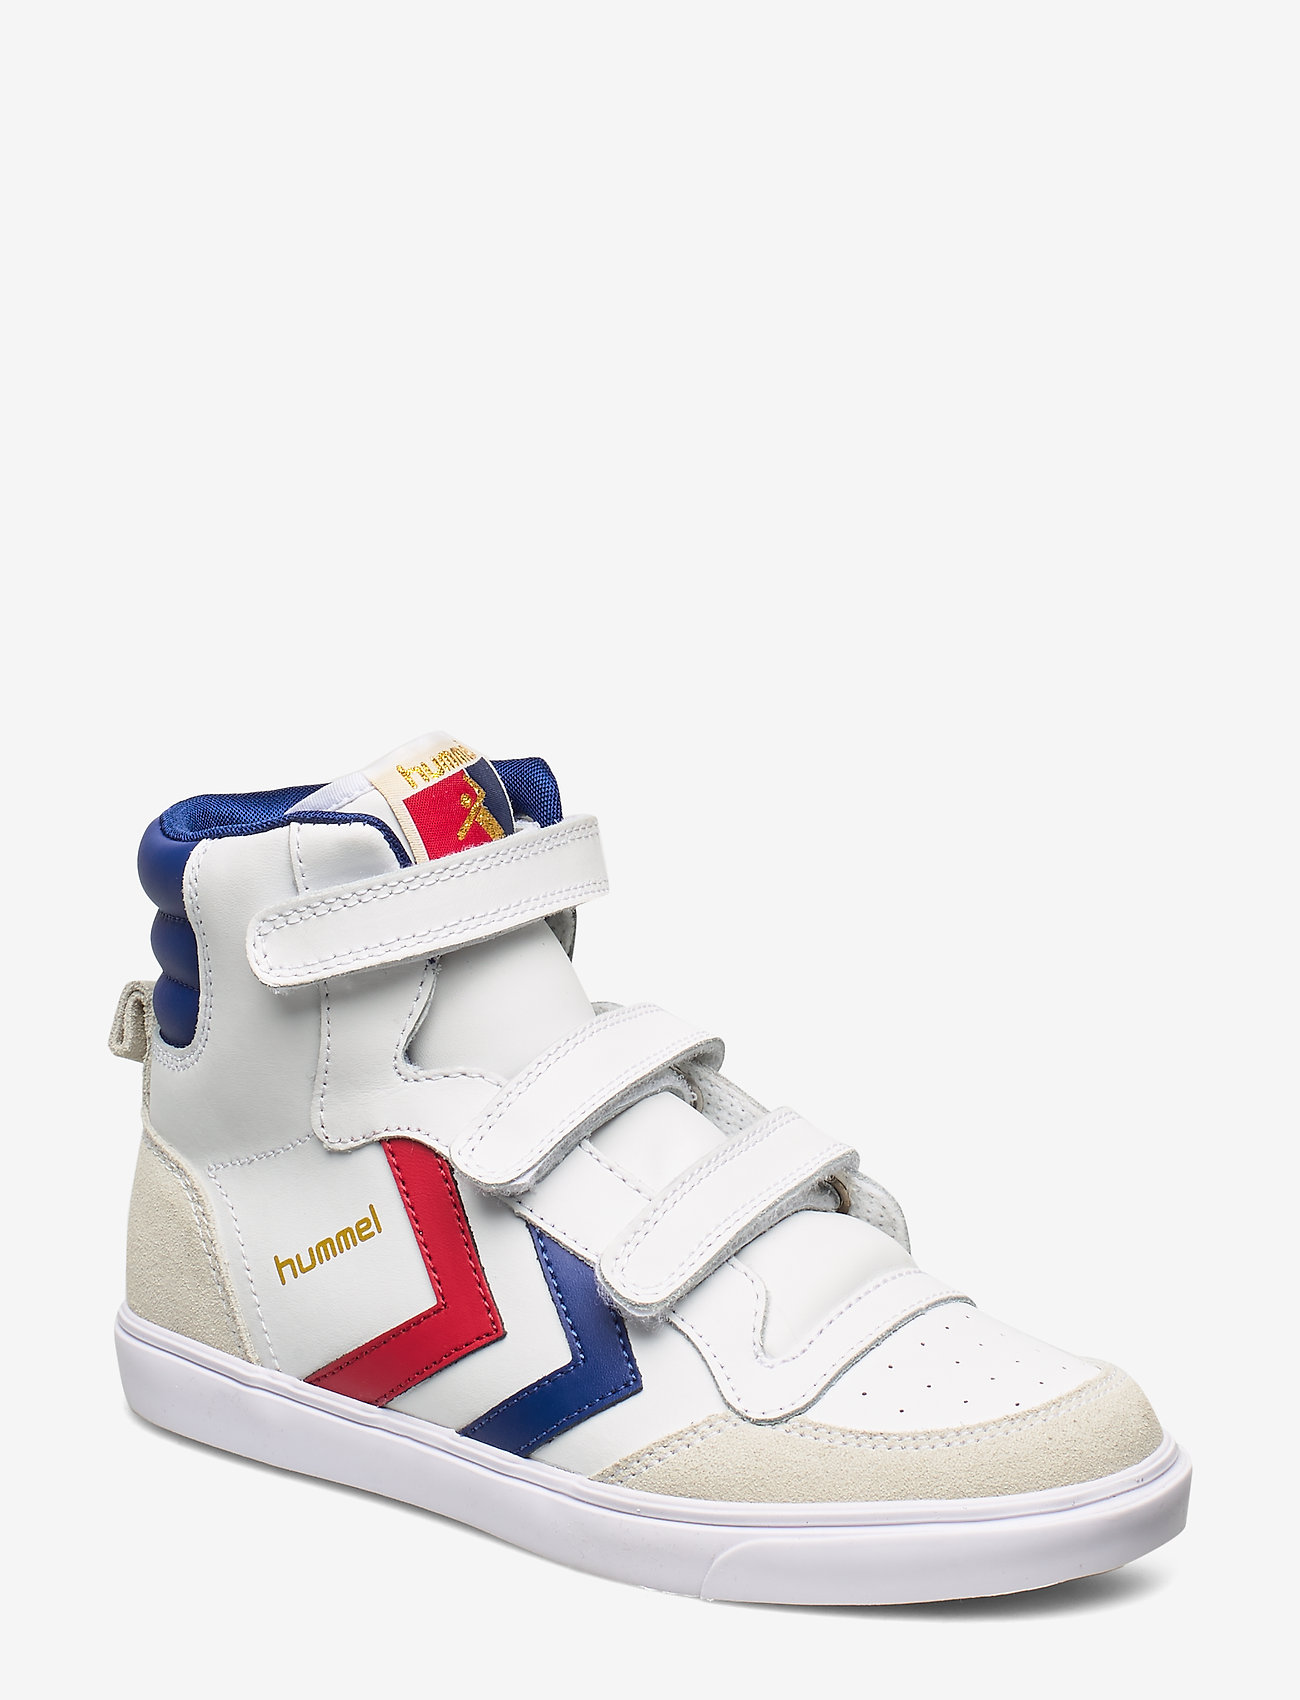 Hummel - HUMMEL STADIL JR LEATHER HIGH - tenisówki - white/blue/red/gum